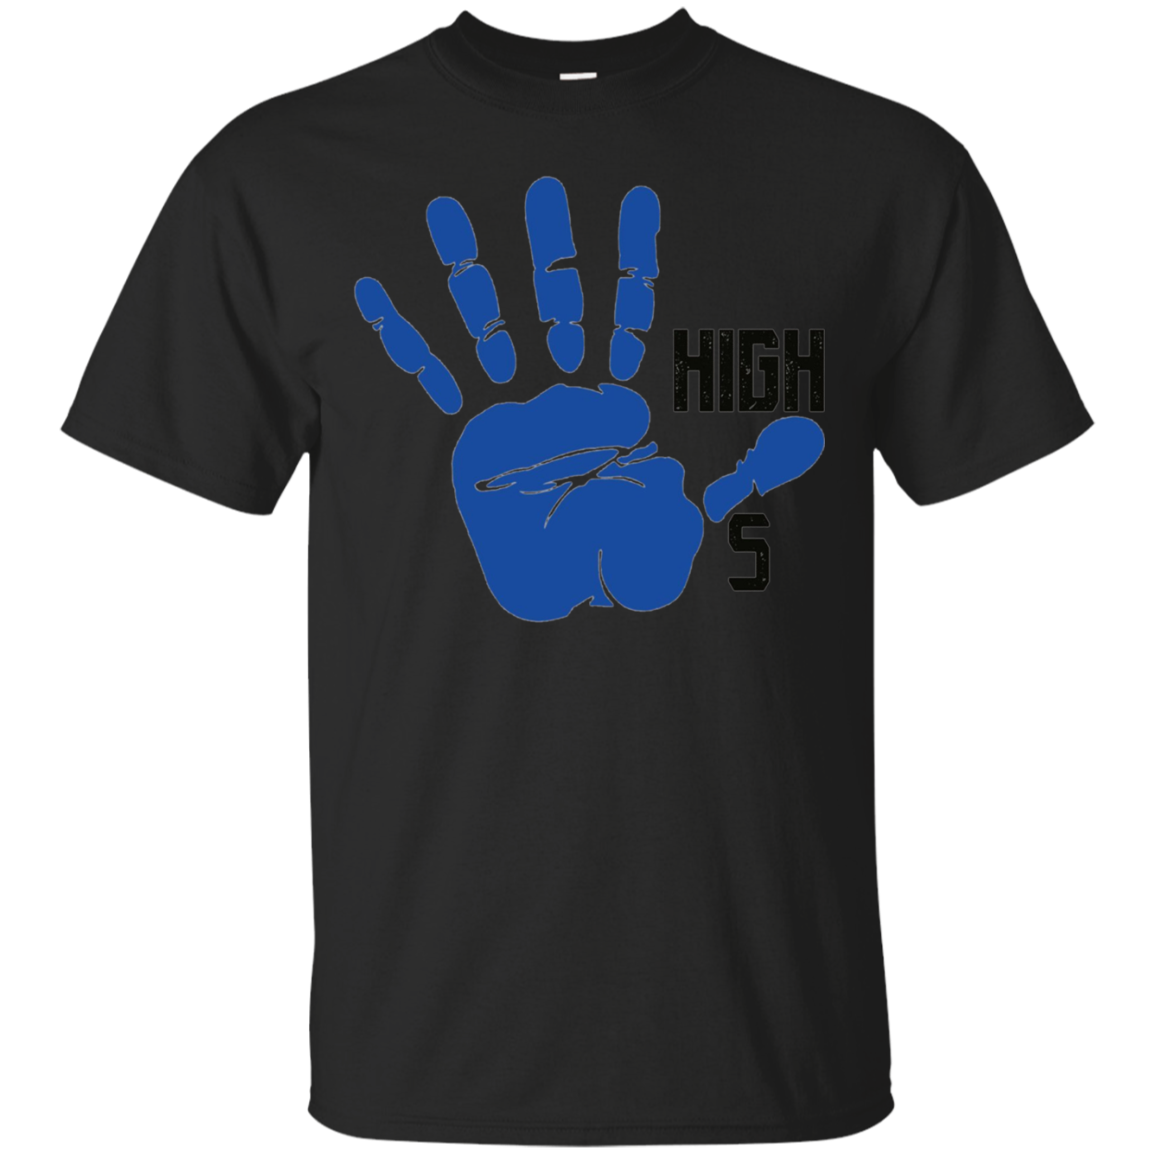 Kids High 5 Hi Five Hand Palm T-shirt Boys Girls Youth Child